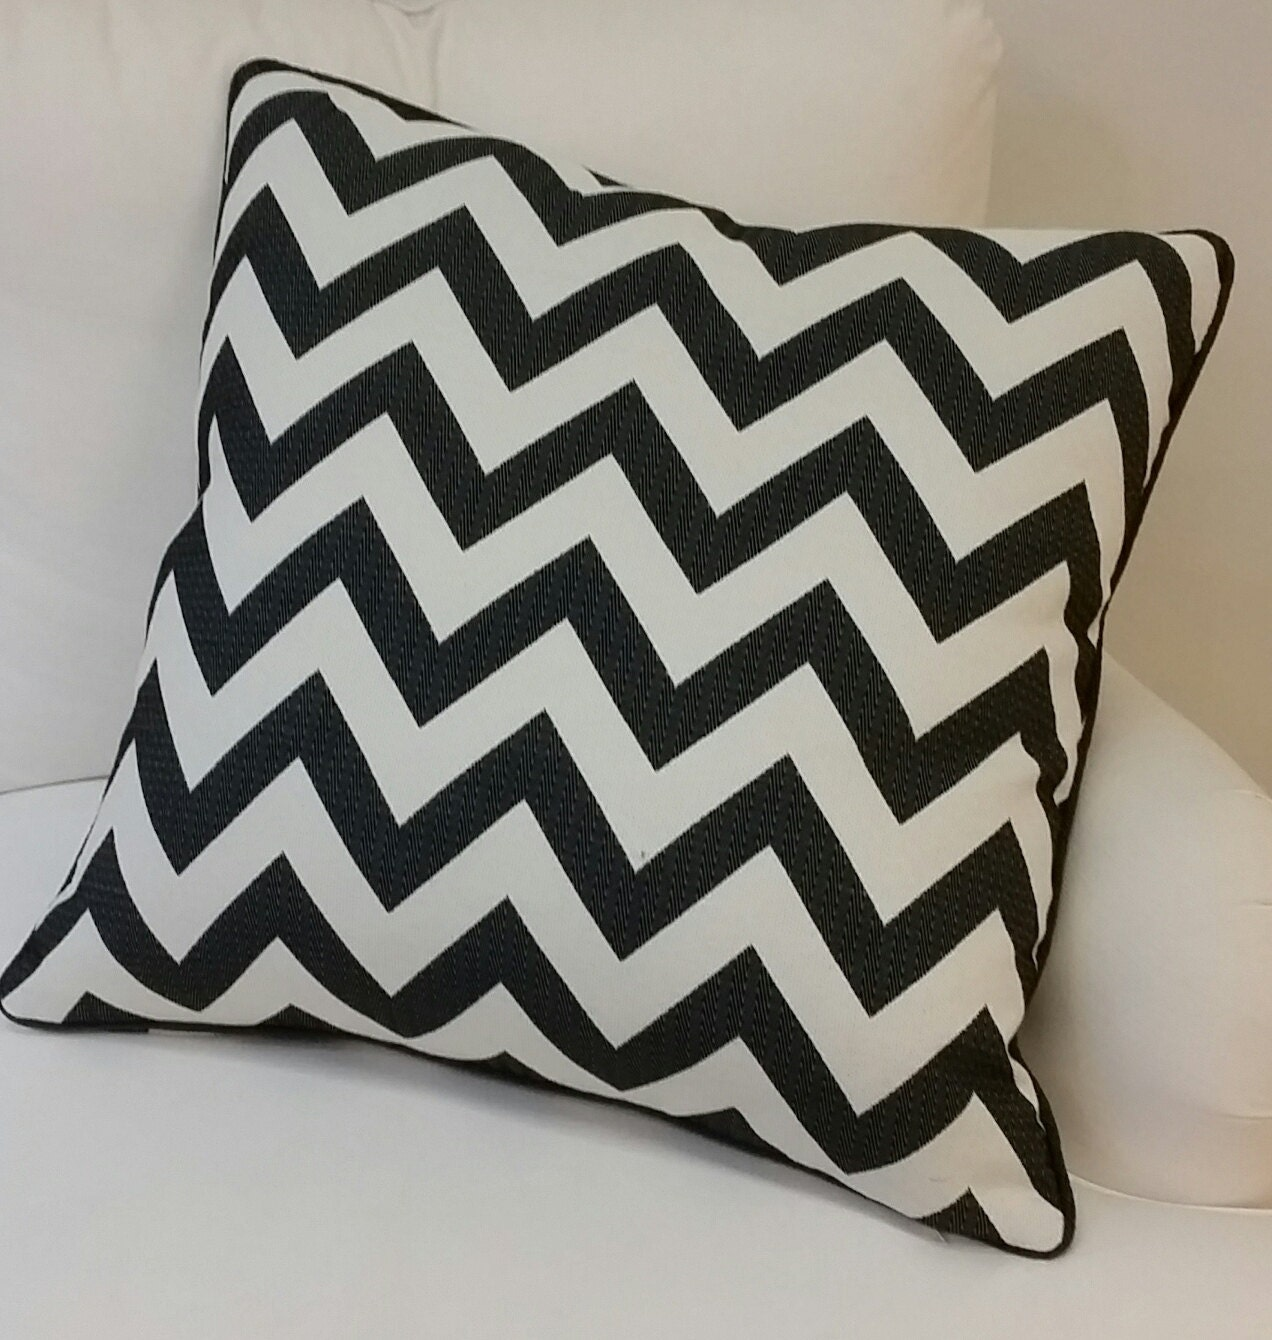 Decorative Pillow Covers 22 X 22 : Decorative Throw Pillow Cover 22 X 22